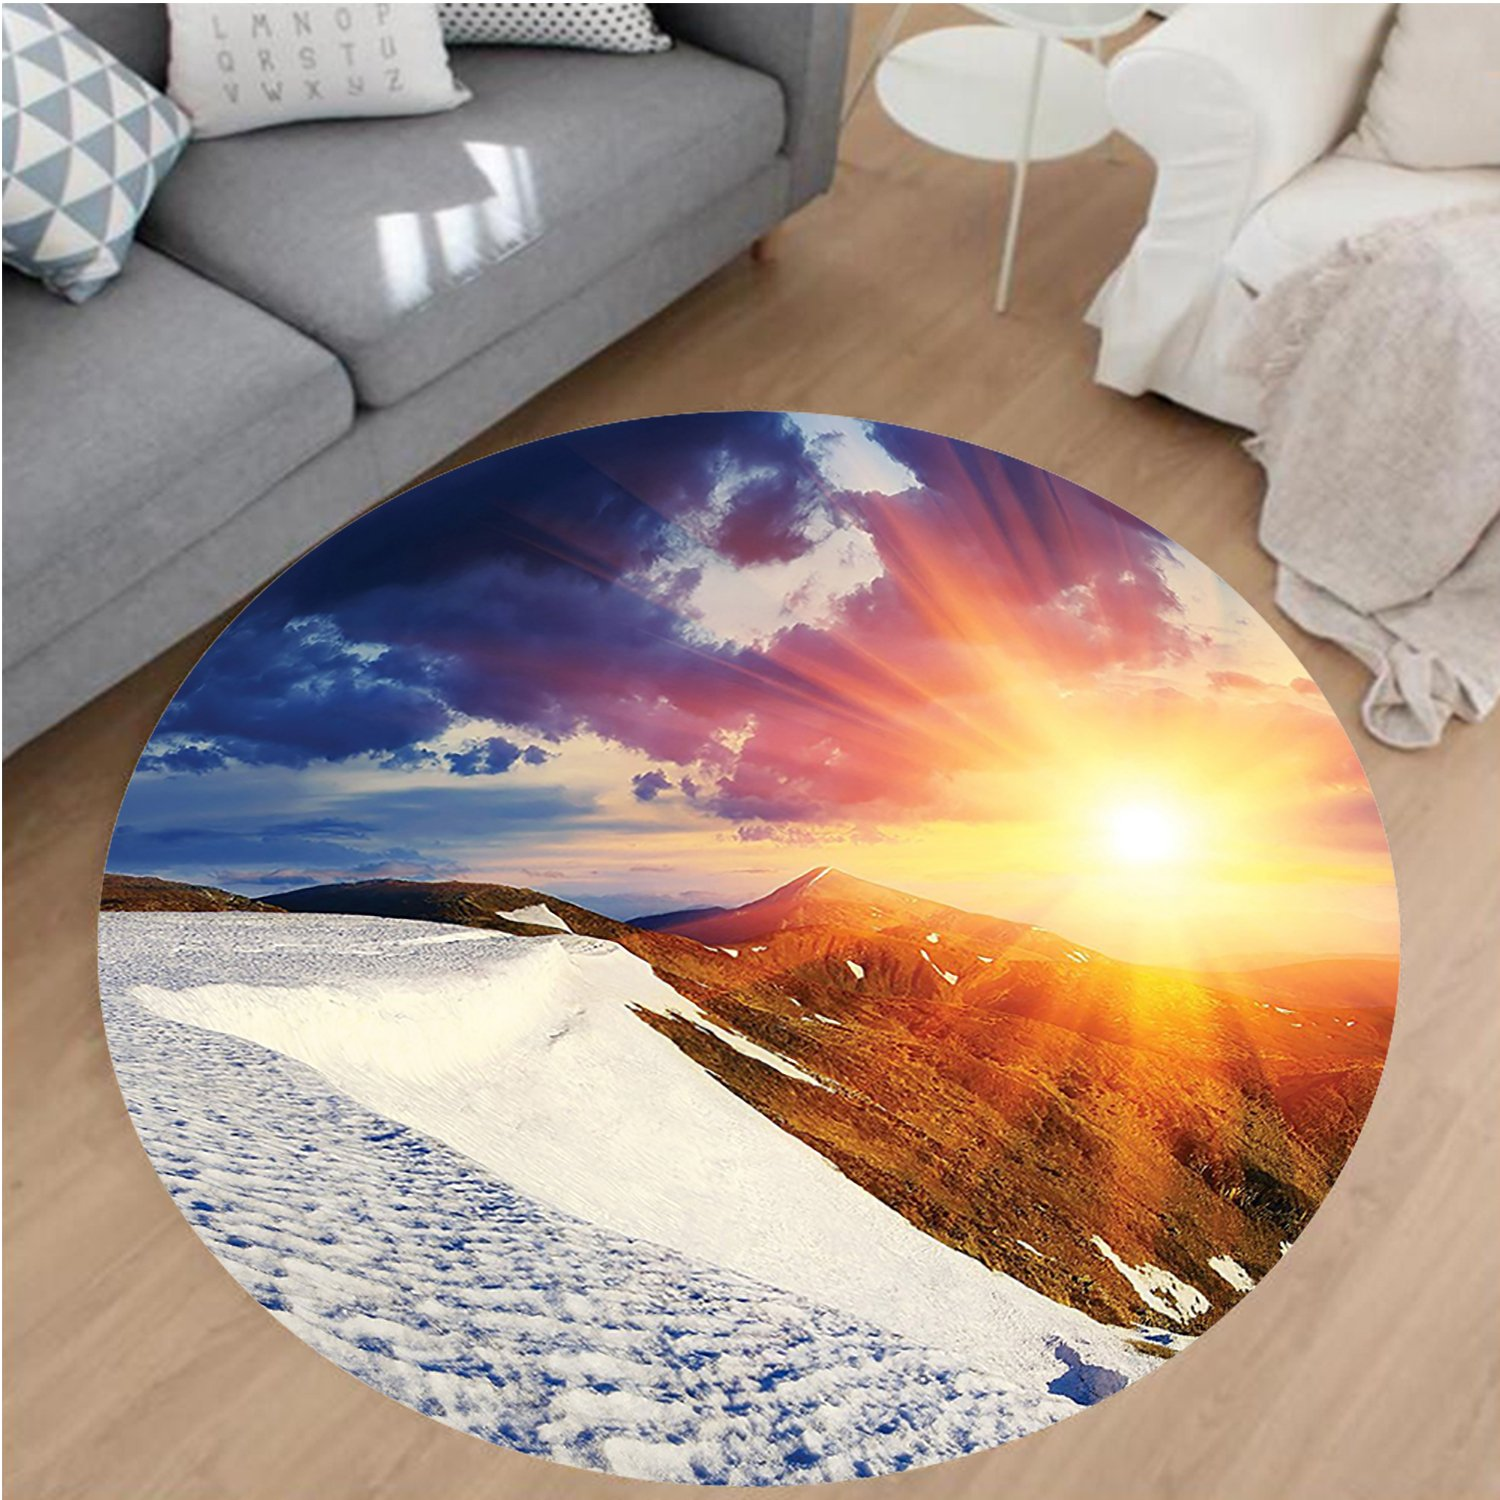 Nalahome Modern Flannel Microfiber Non-Slip Machine Washable Round Area Rug-Clouds Nature Mountain and Valley Sun Divider in College Landscape Home White Blue Yellow area rugs Home Decor-Round 67''